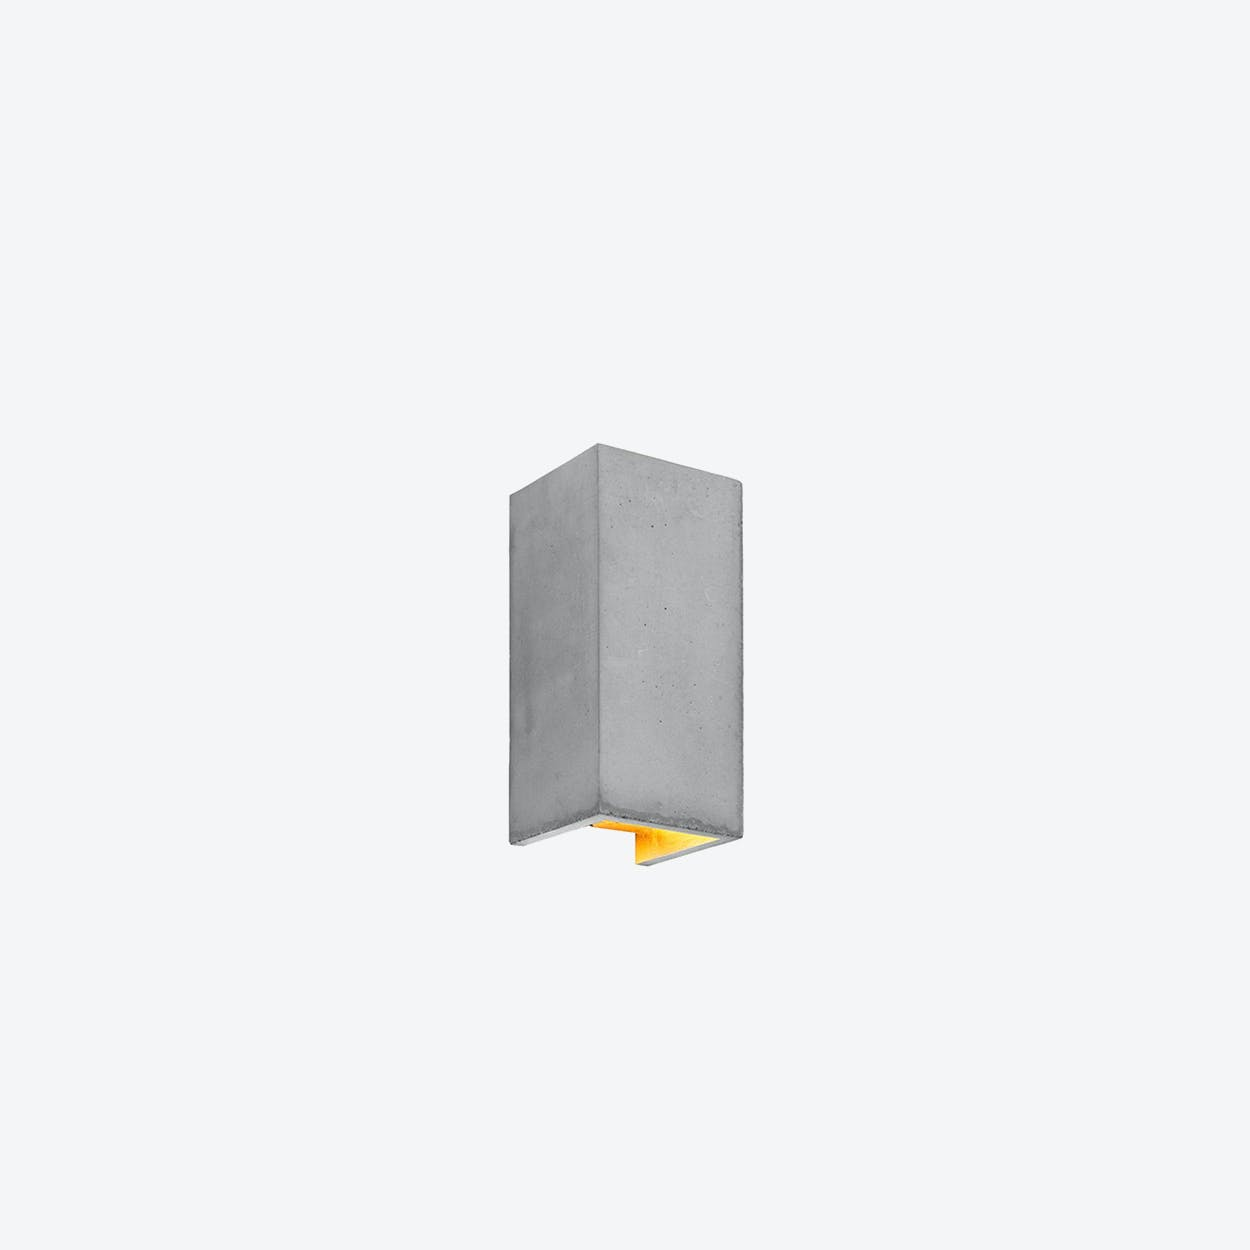 Concrete Wall Light Rectangular B8 in Light Grey and Gold